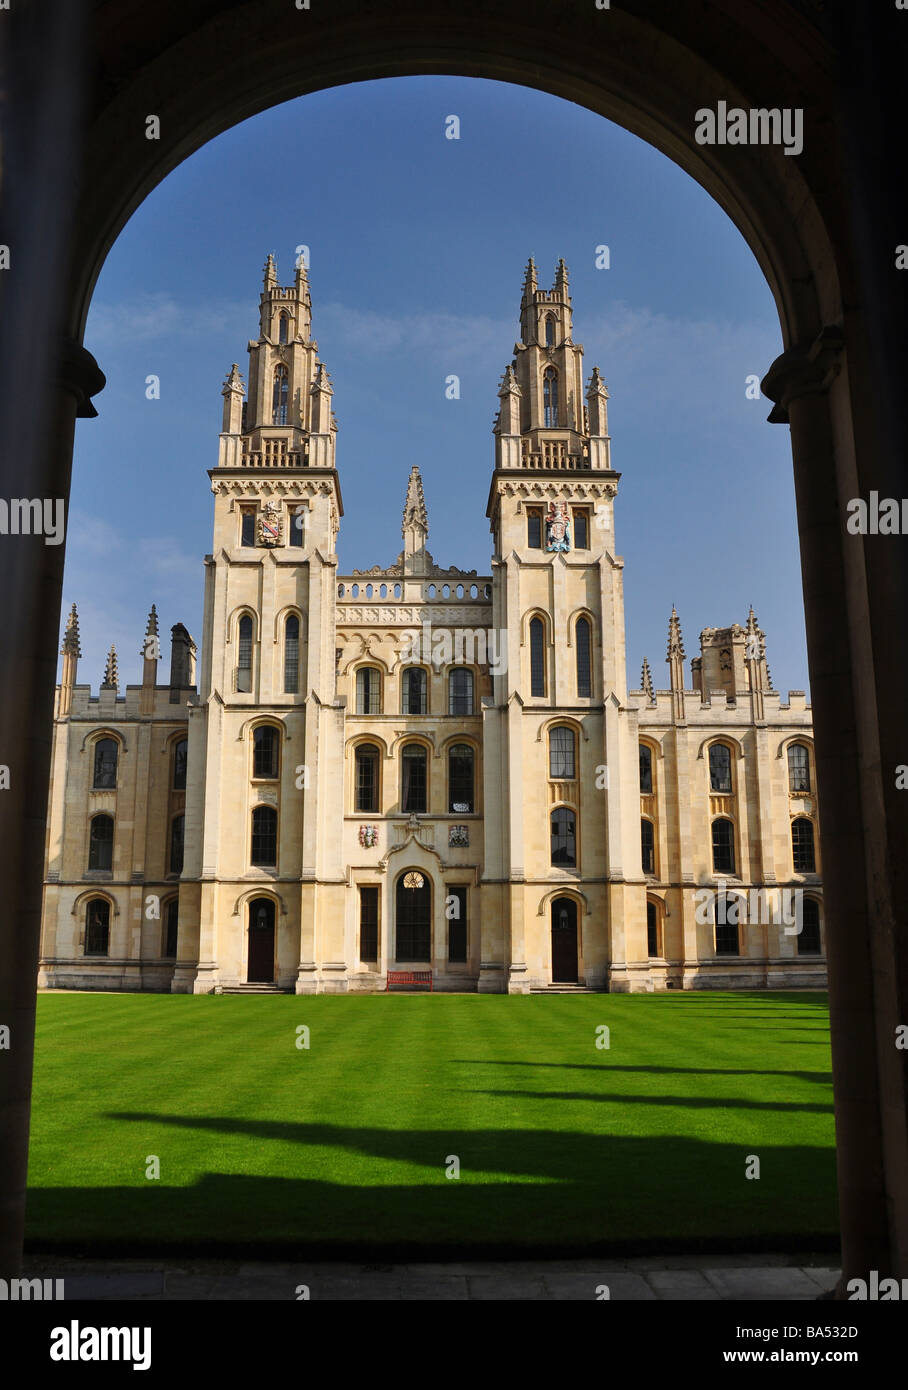 North Quad of All Souls College, Oxford - Stock Image